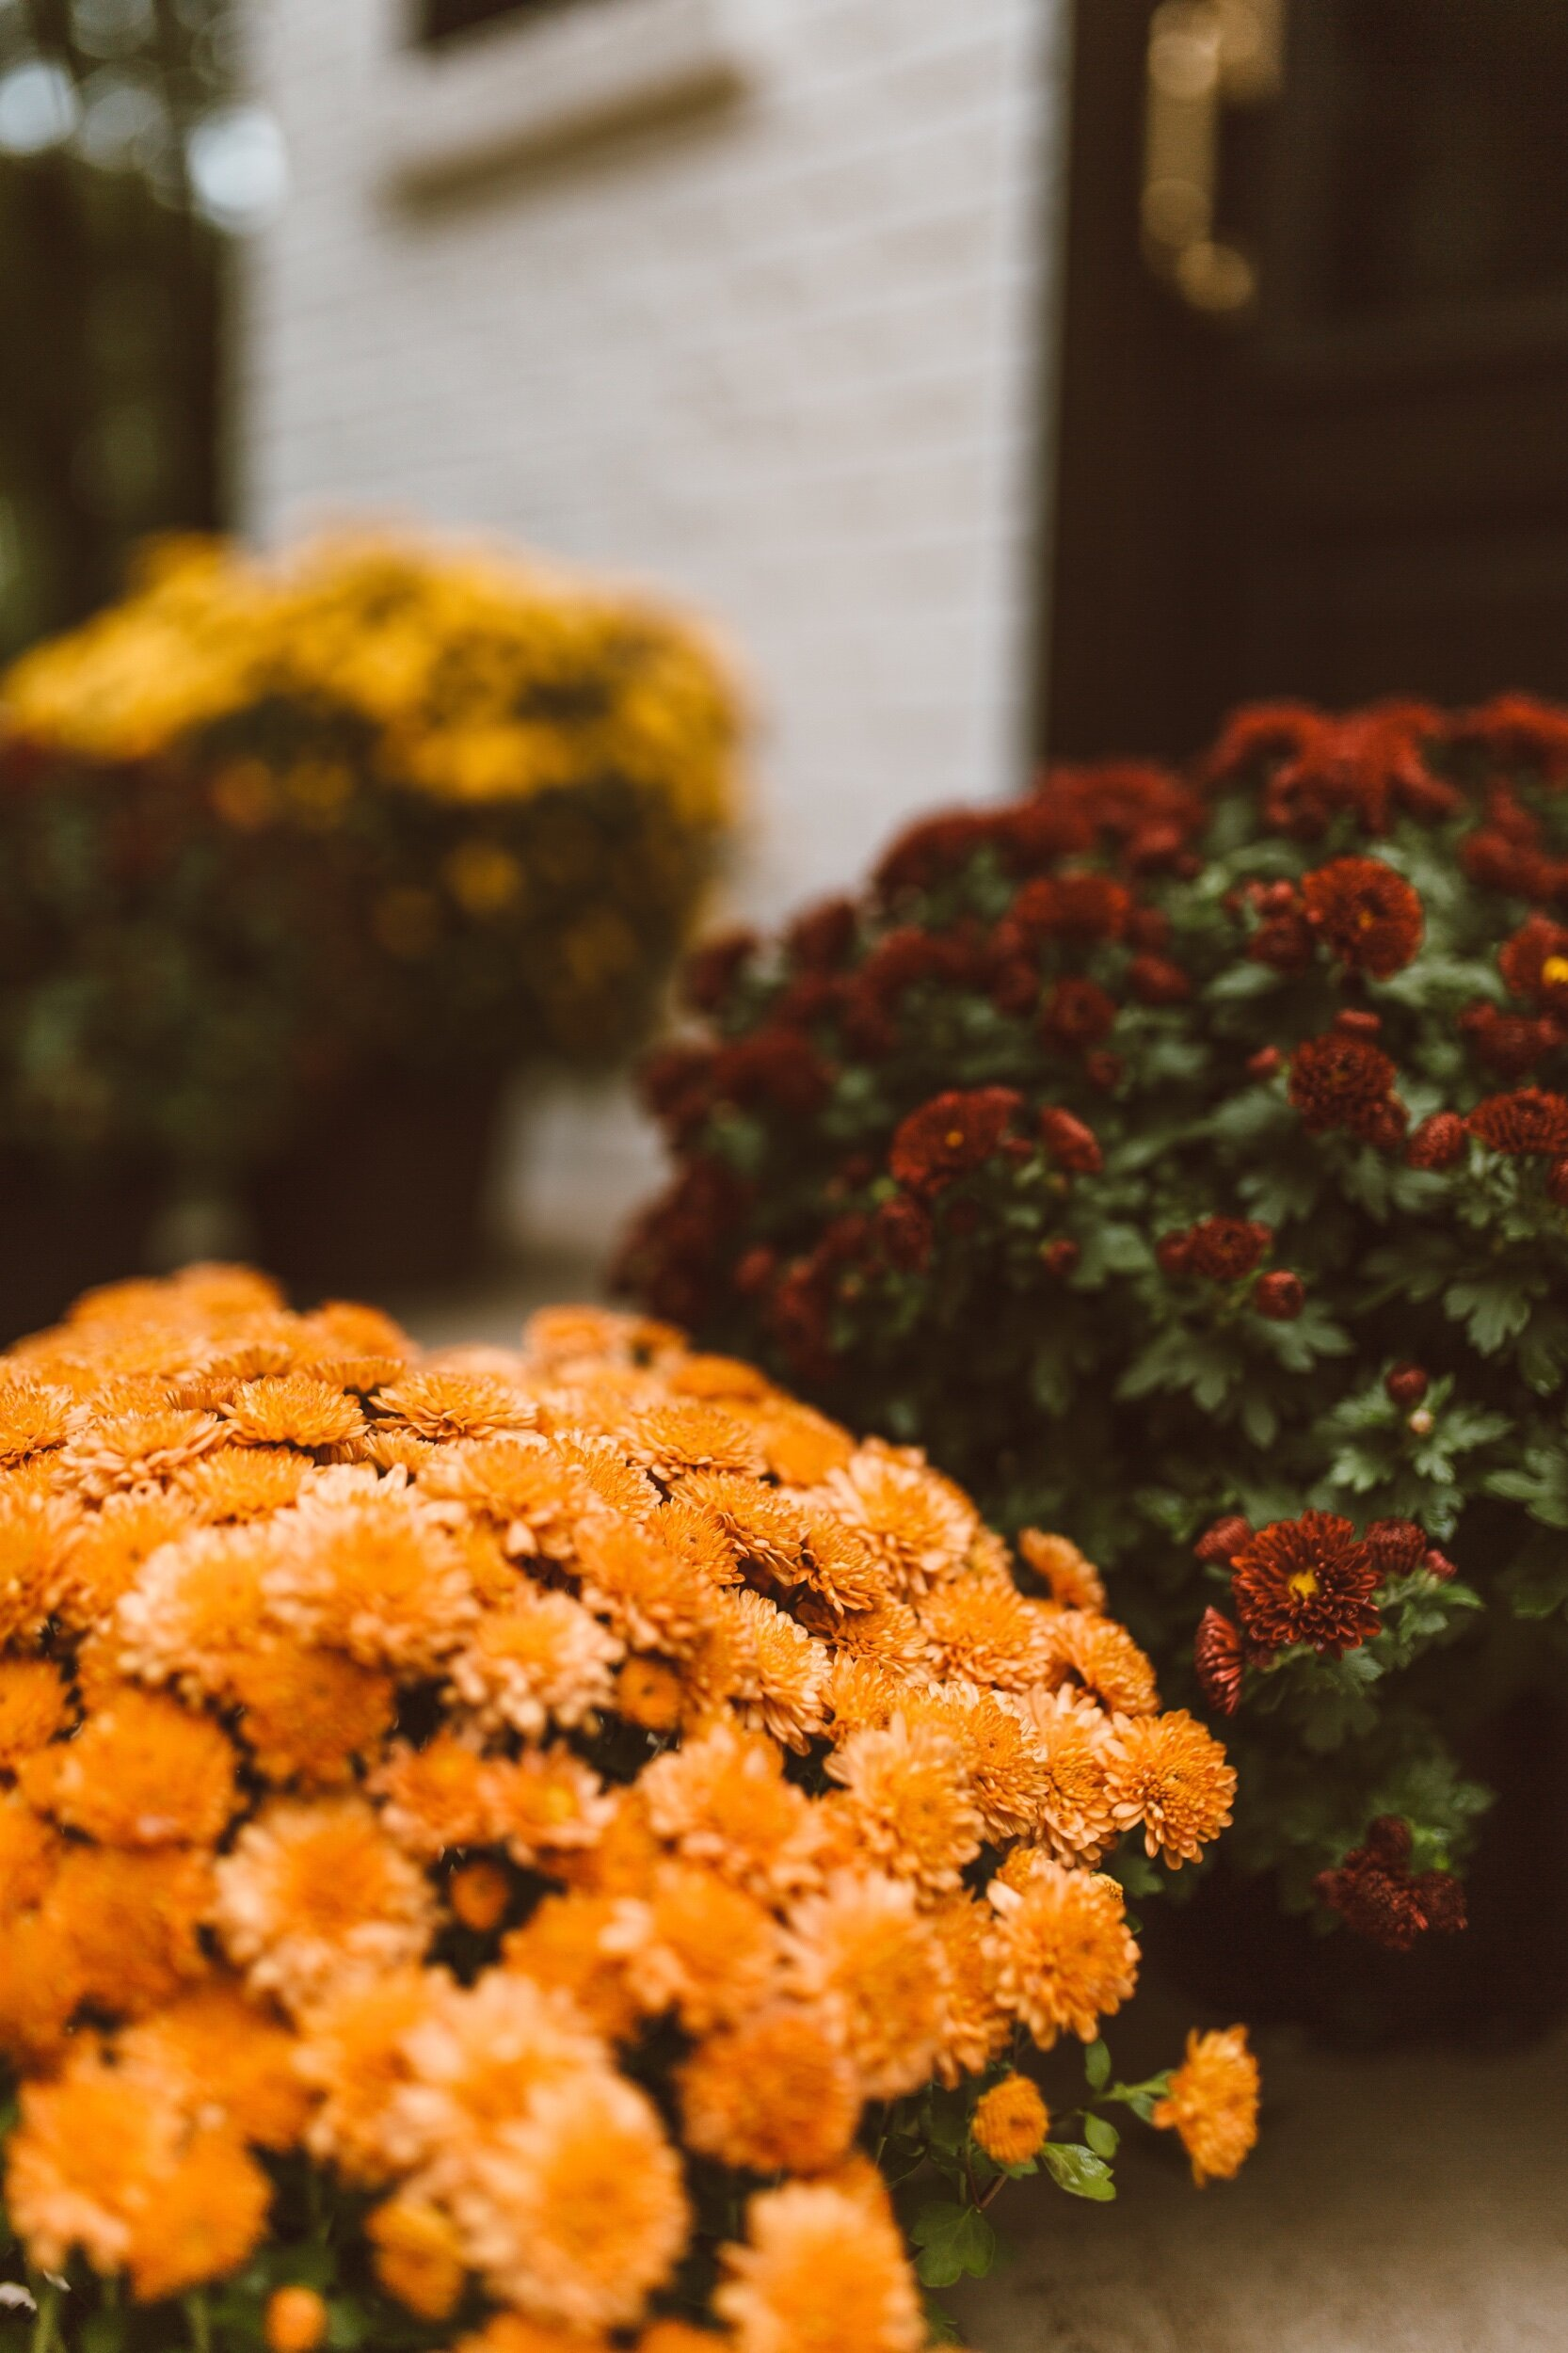 forthehome-how-to-care-for-fall-mums-05.jpeg